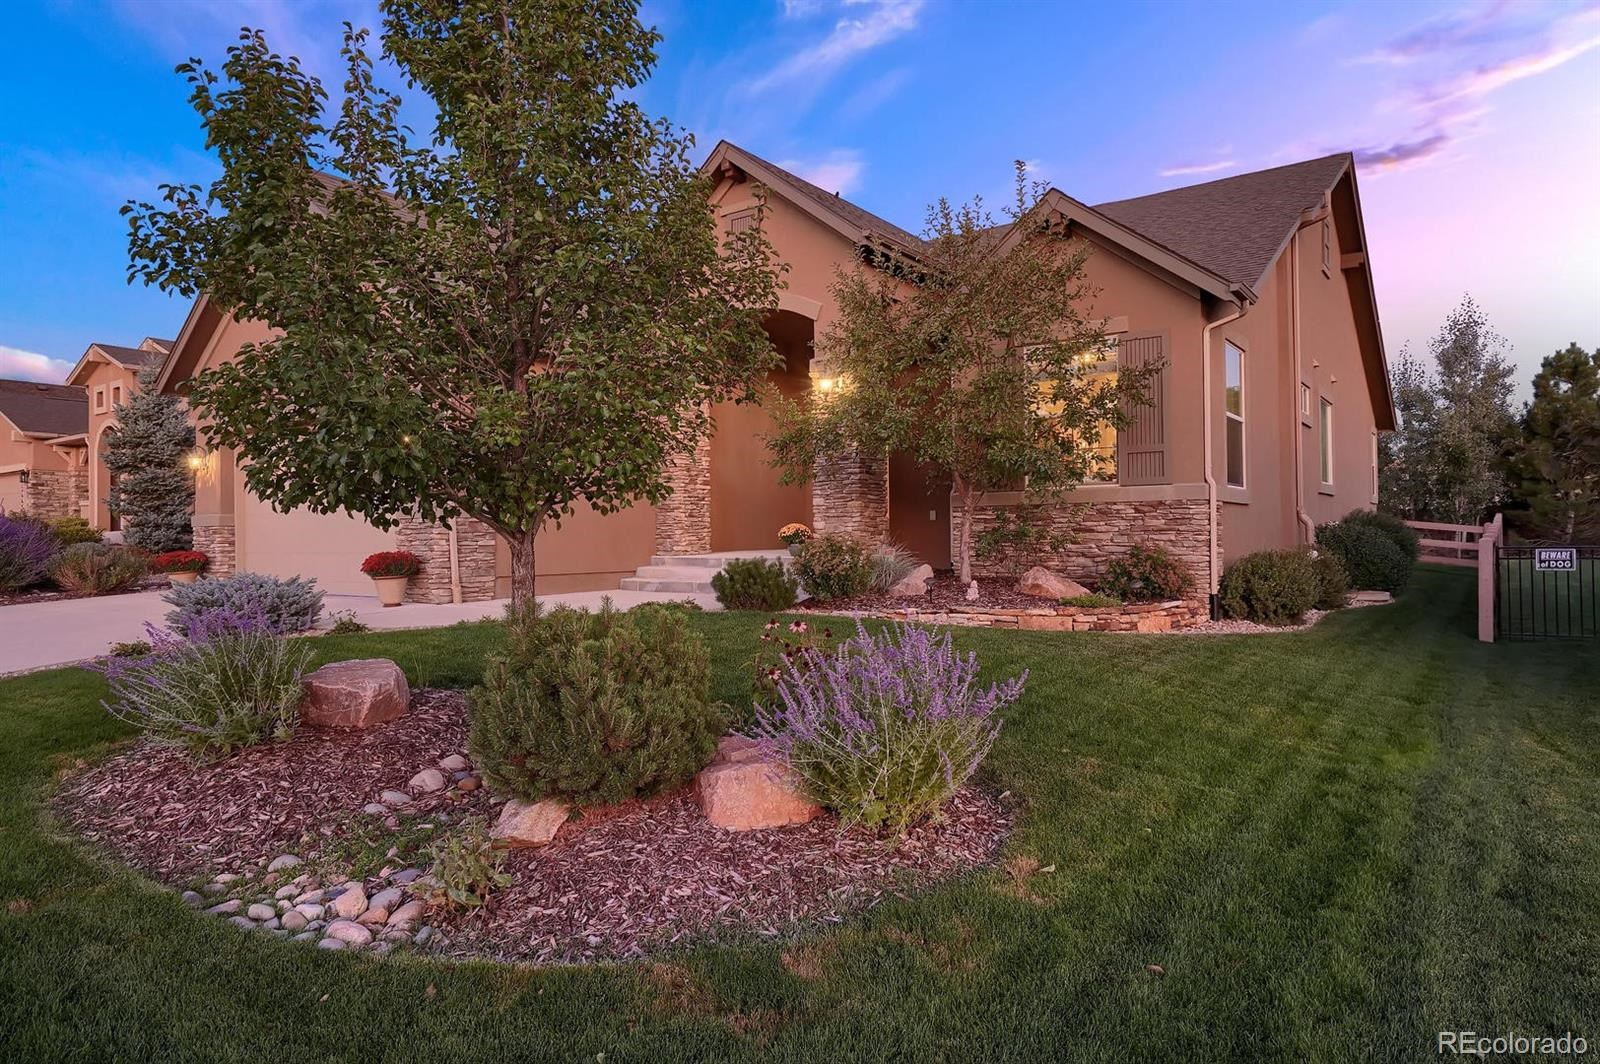 MLS# 6829804 - 1 - 13435  Cedarville Way, Colorado Springs, CO 80921